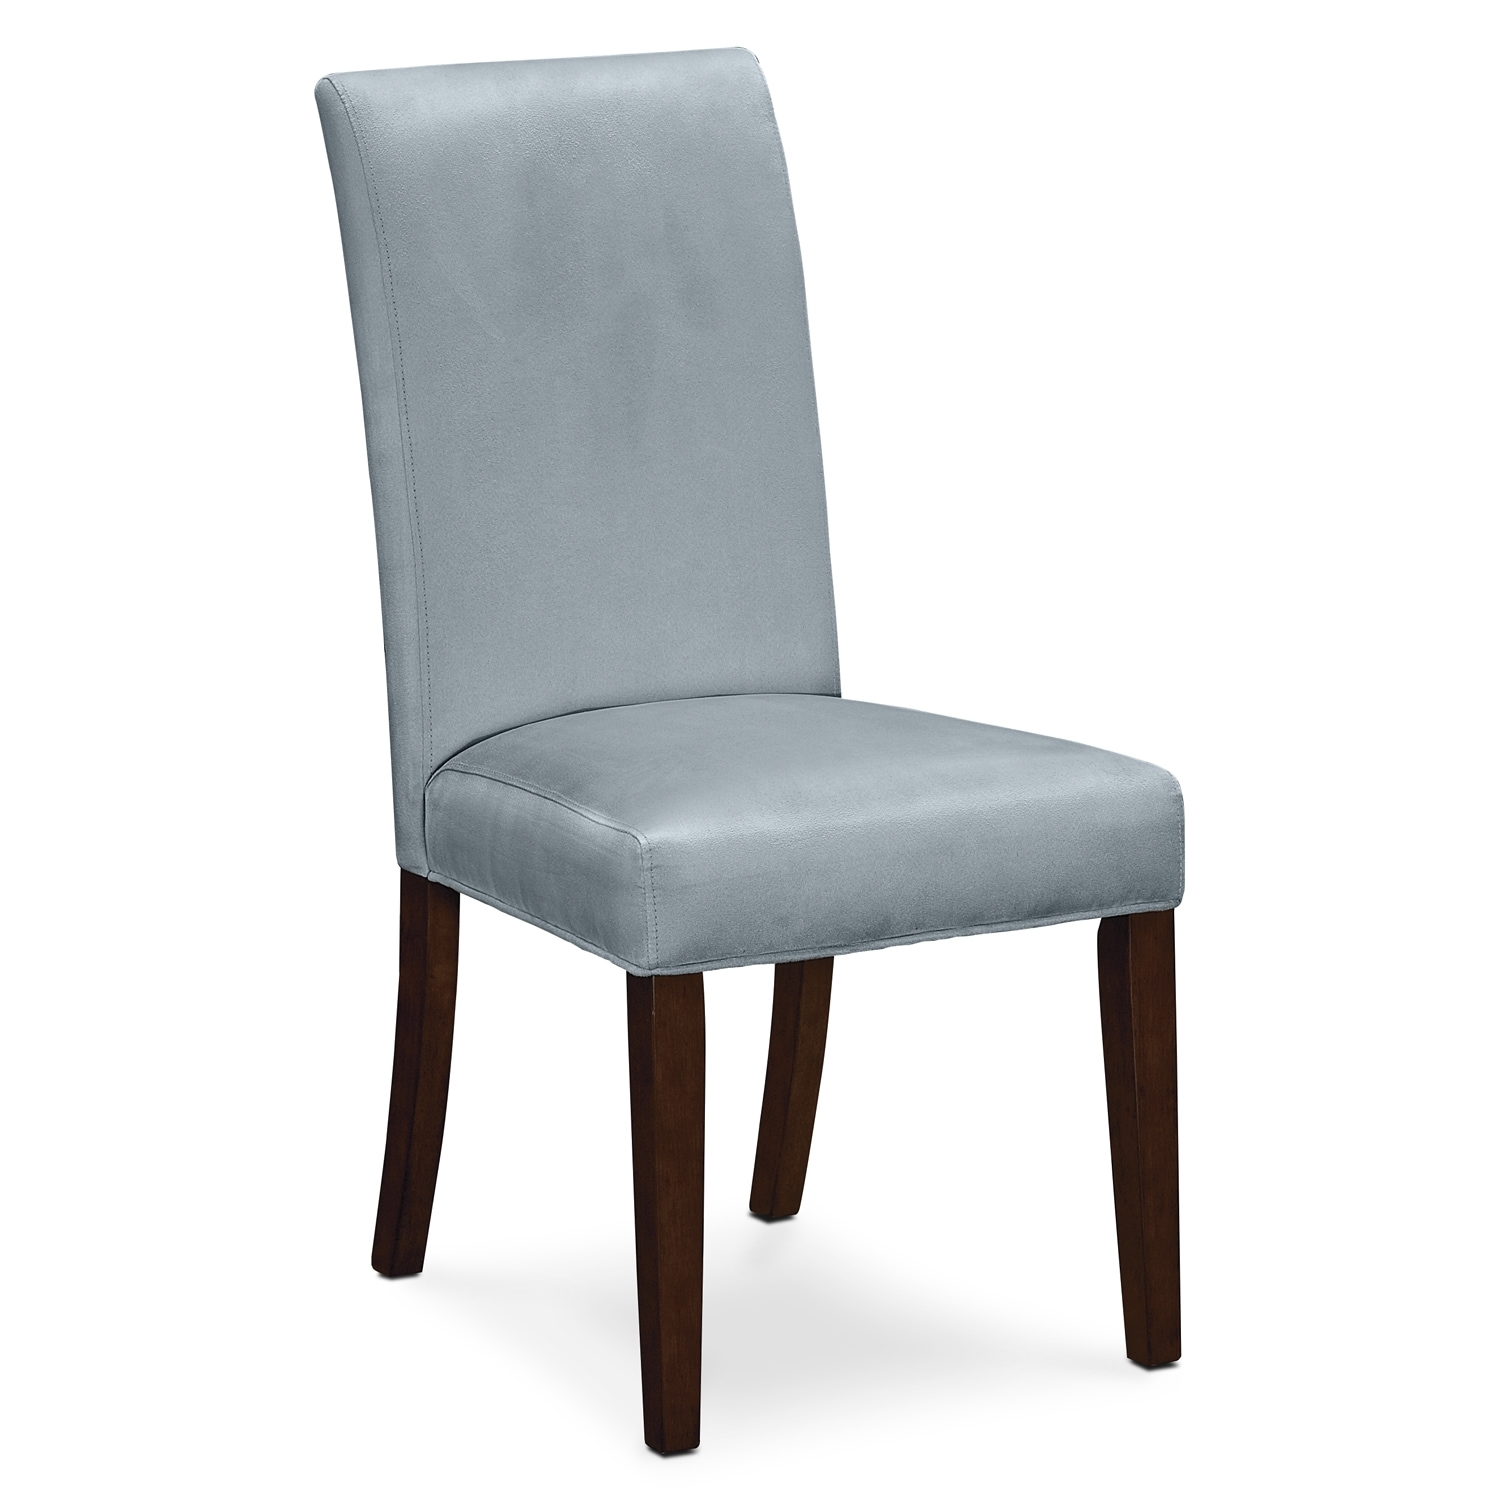 Aqua Dining Chairs Alcove Side Chair Aqua Value City Furniture And Mattresses